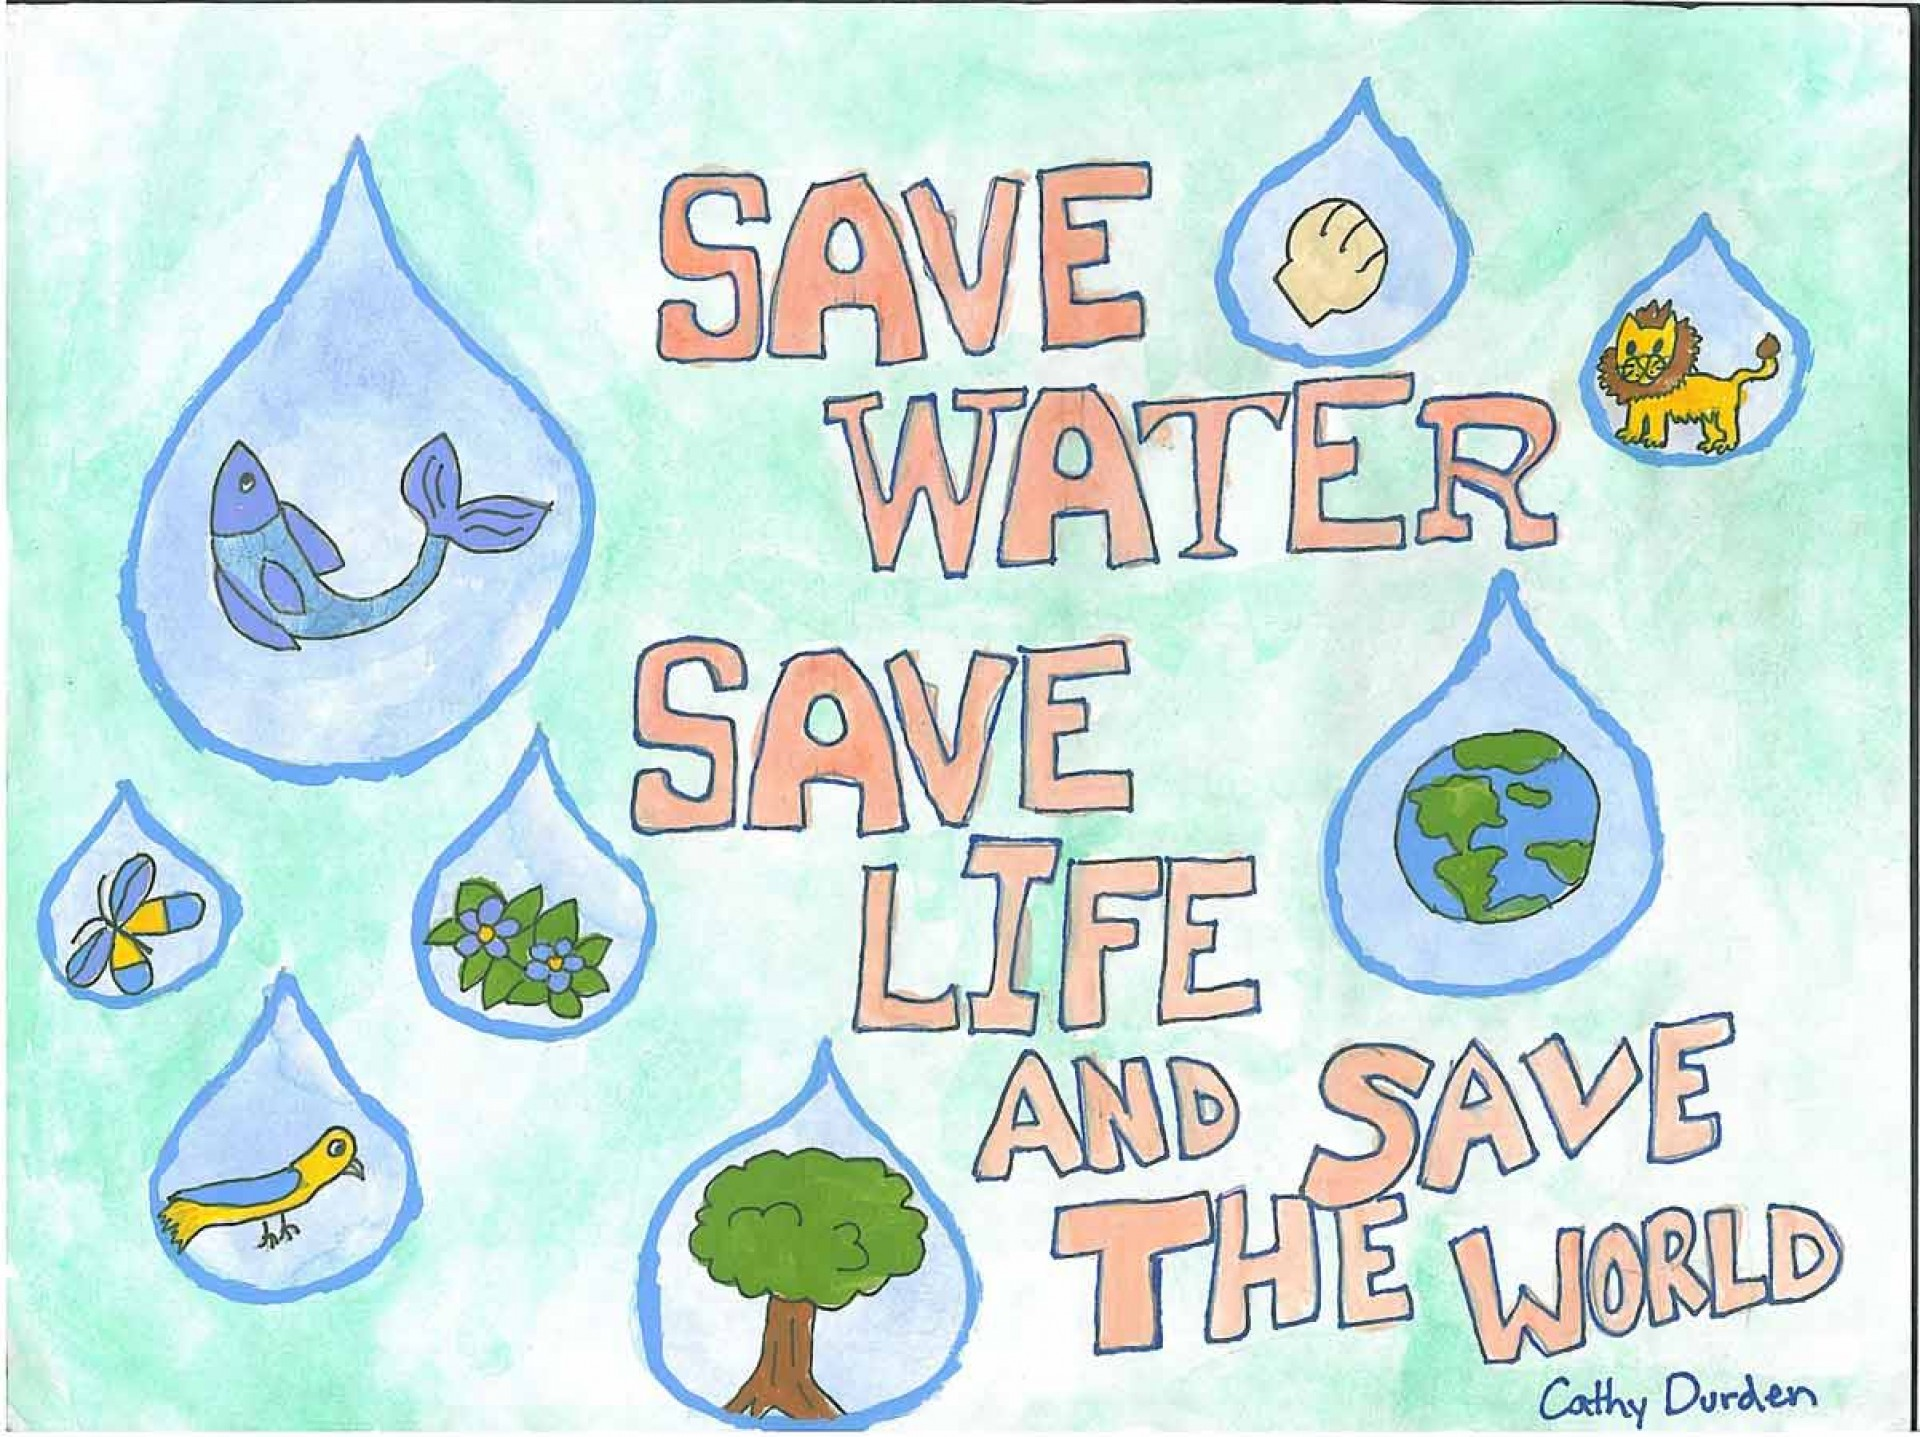 013 Essay Example Save Water Life Words Poster Lrg Stunning 300 1920